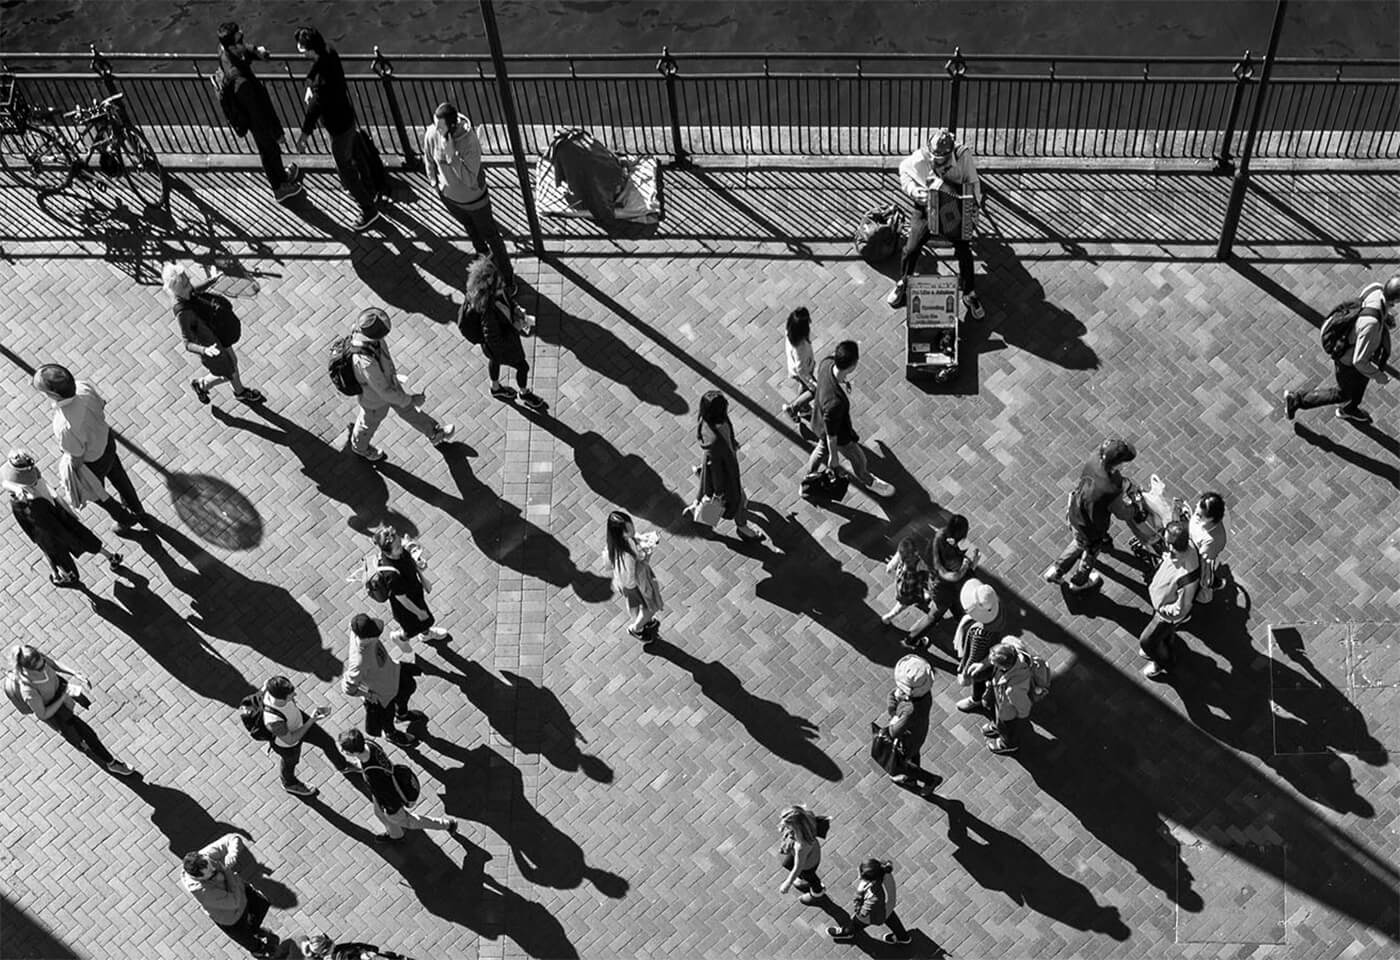 Black and white birds eye view image of pedestrians